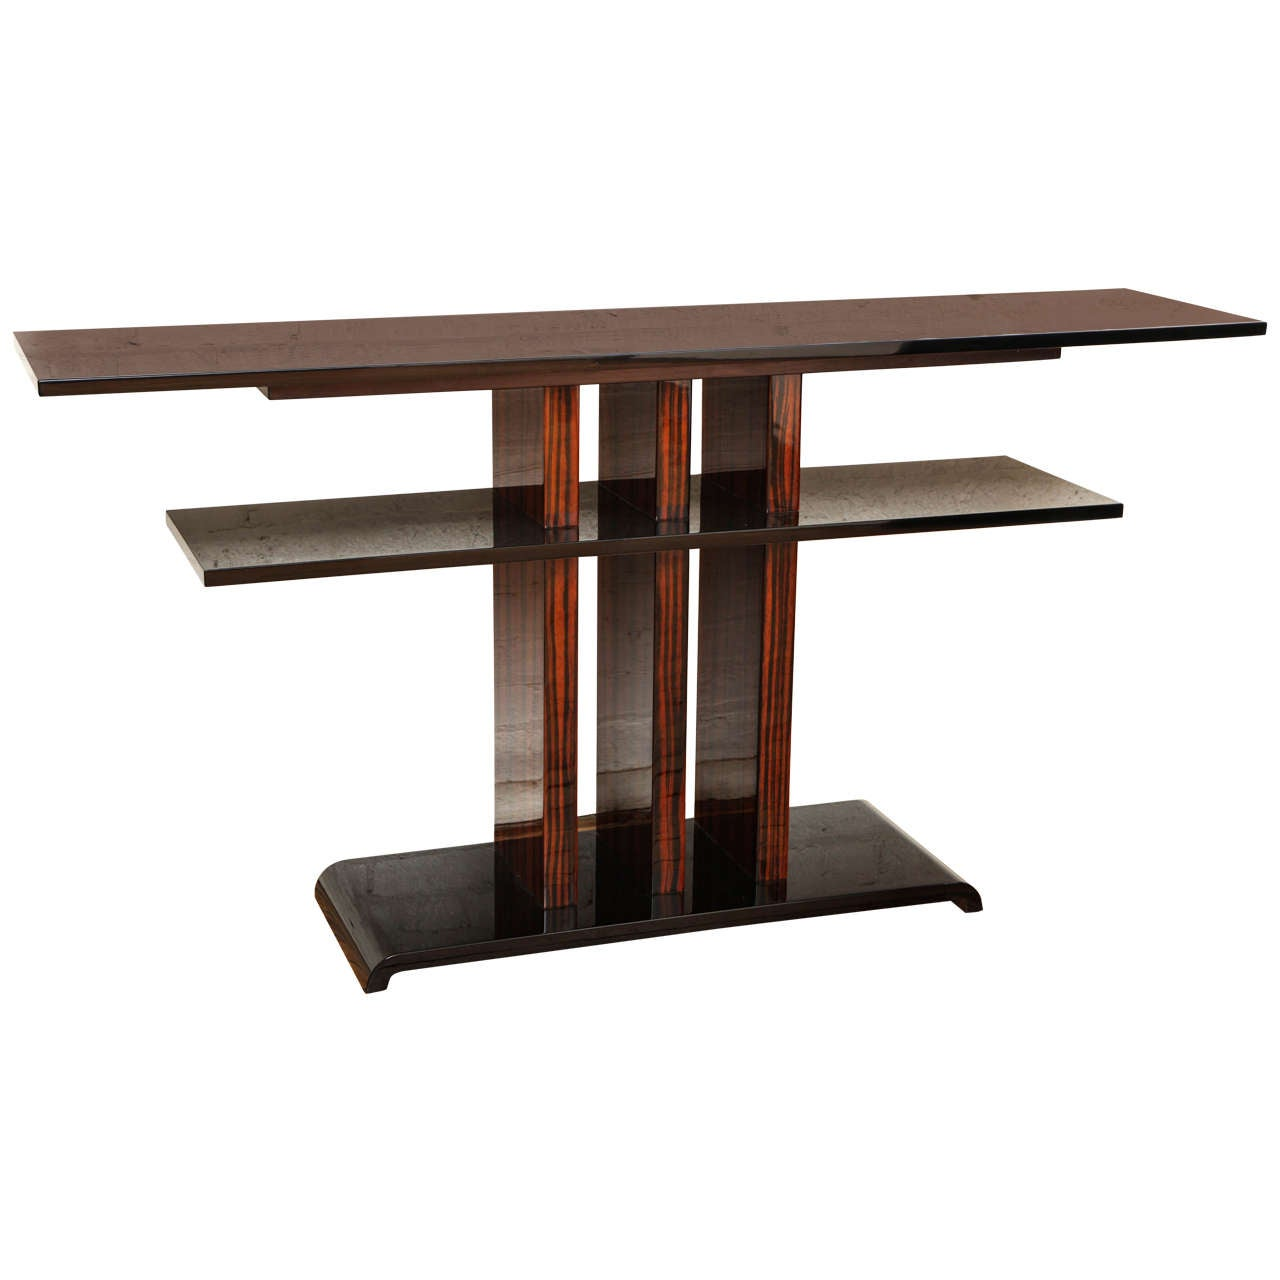 Art deco double shelf console table at 1stdibs art deco double shelf console table 1 geotapseo Choice Image